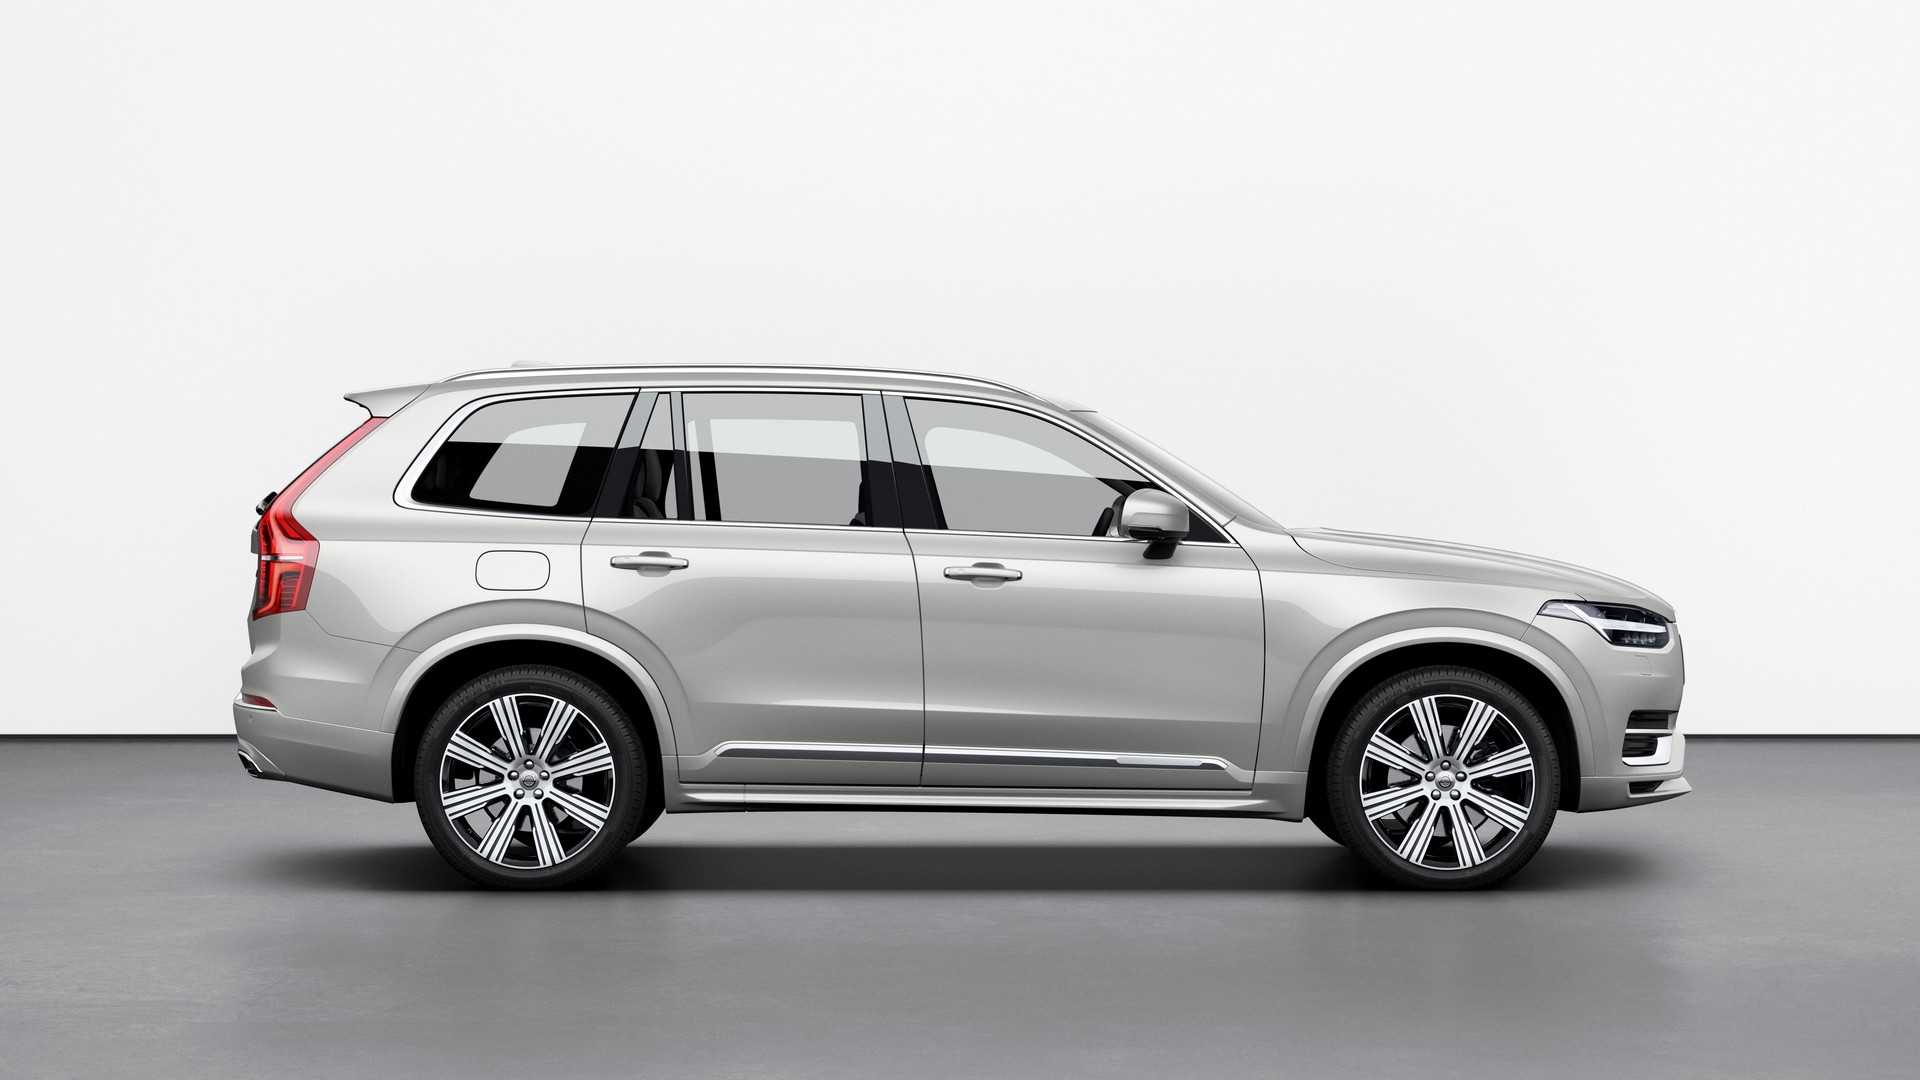 71 New Volvo Xc90 Facelift 2020 Uk Exterior And Interior